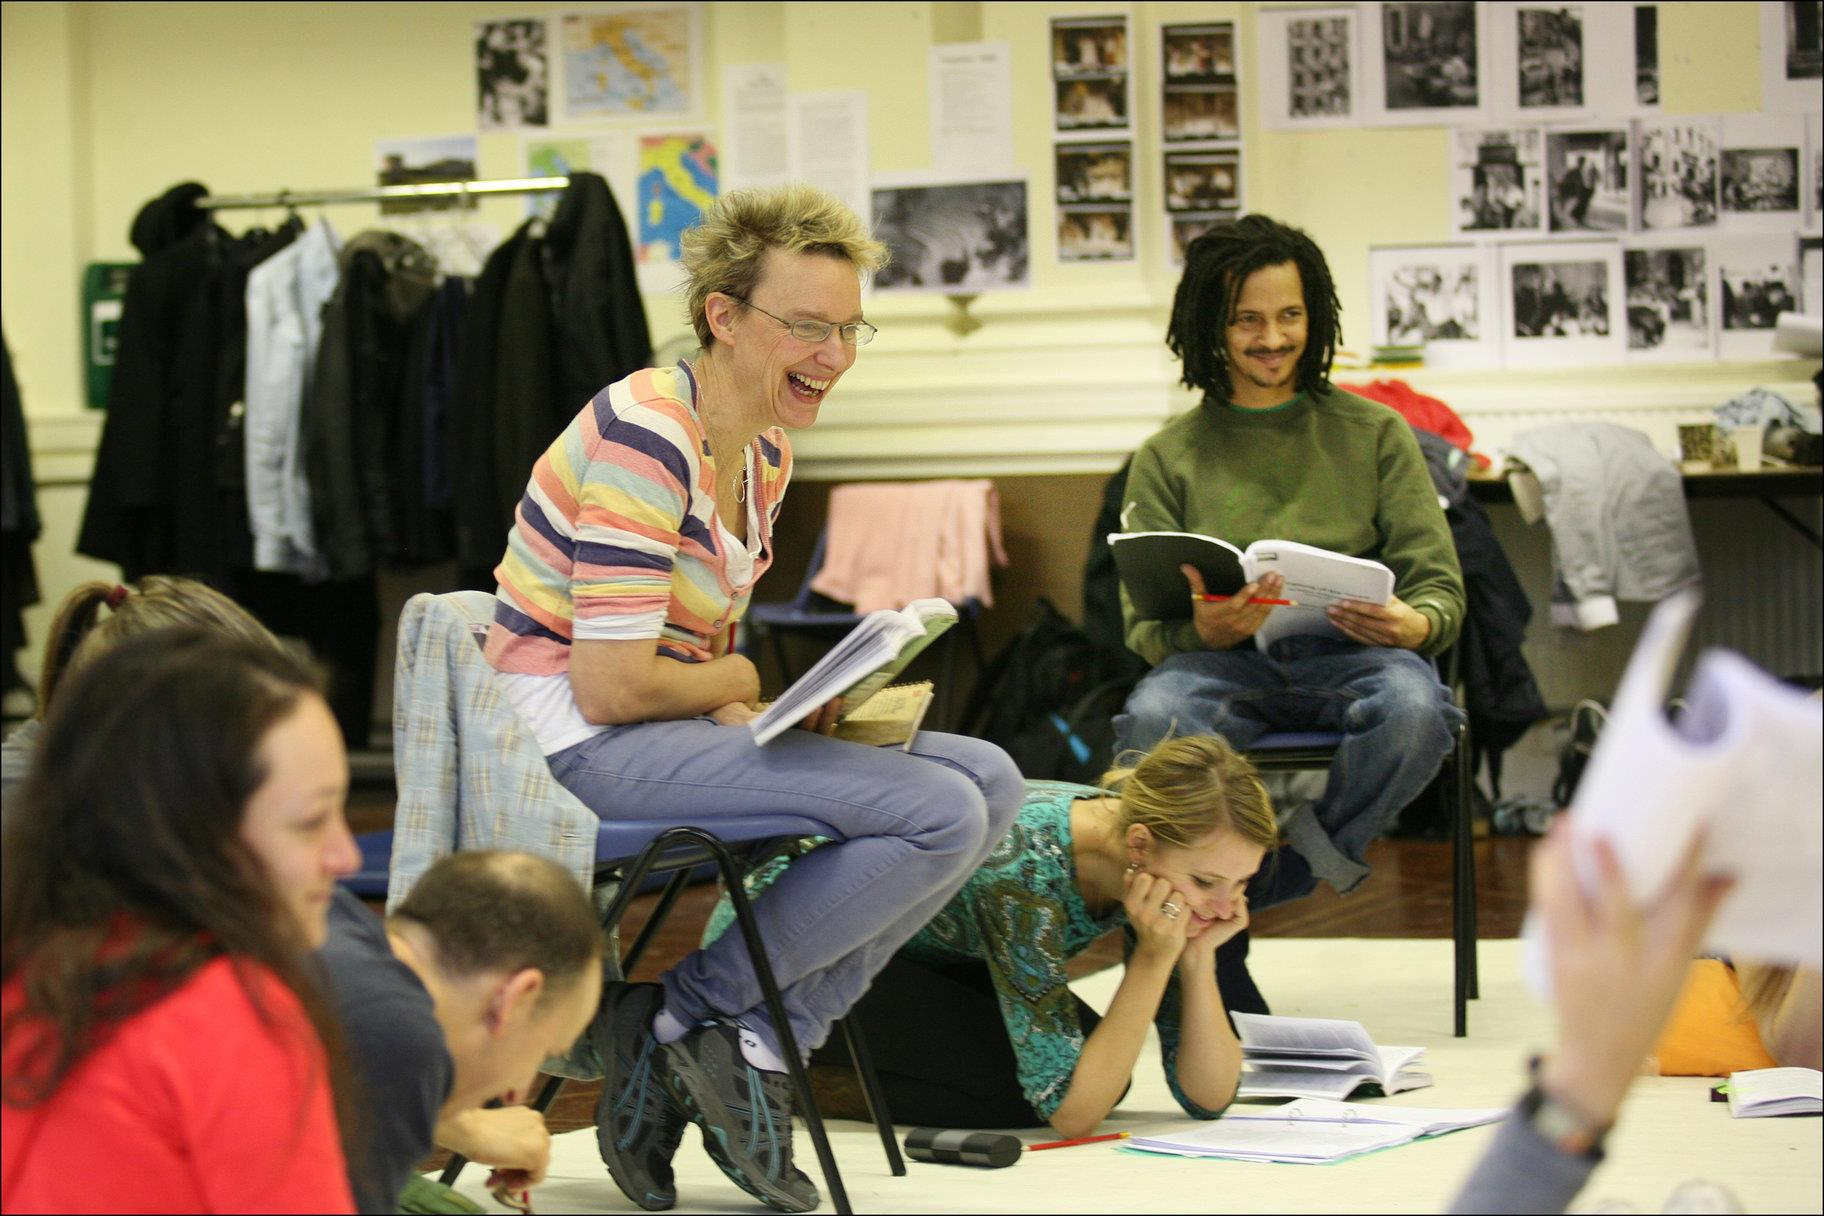 Women in stripey top laughs as she sits directing actors in rehearsals for The Taming of the Shrew 2012